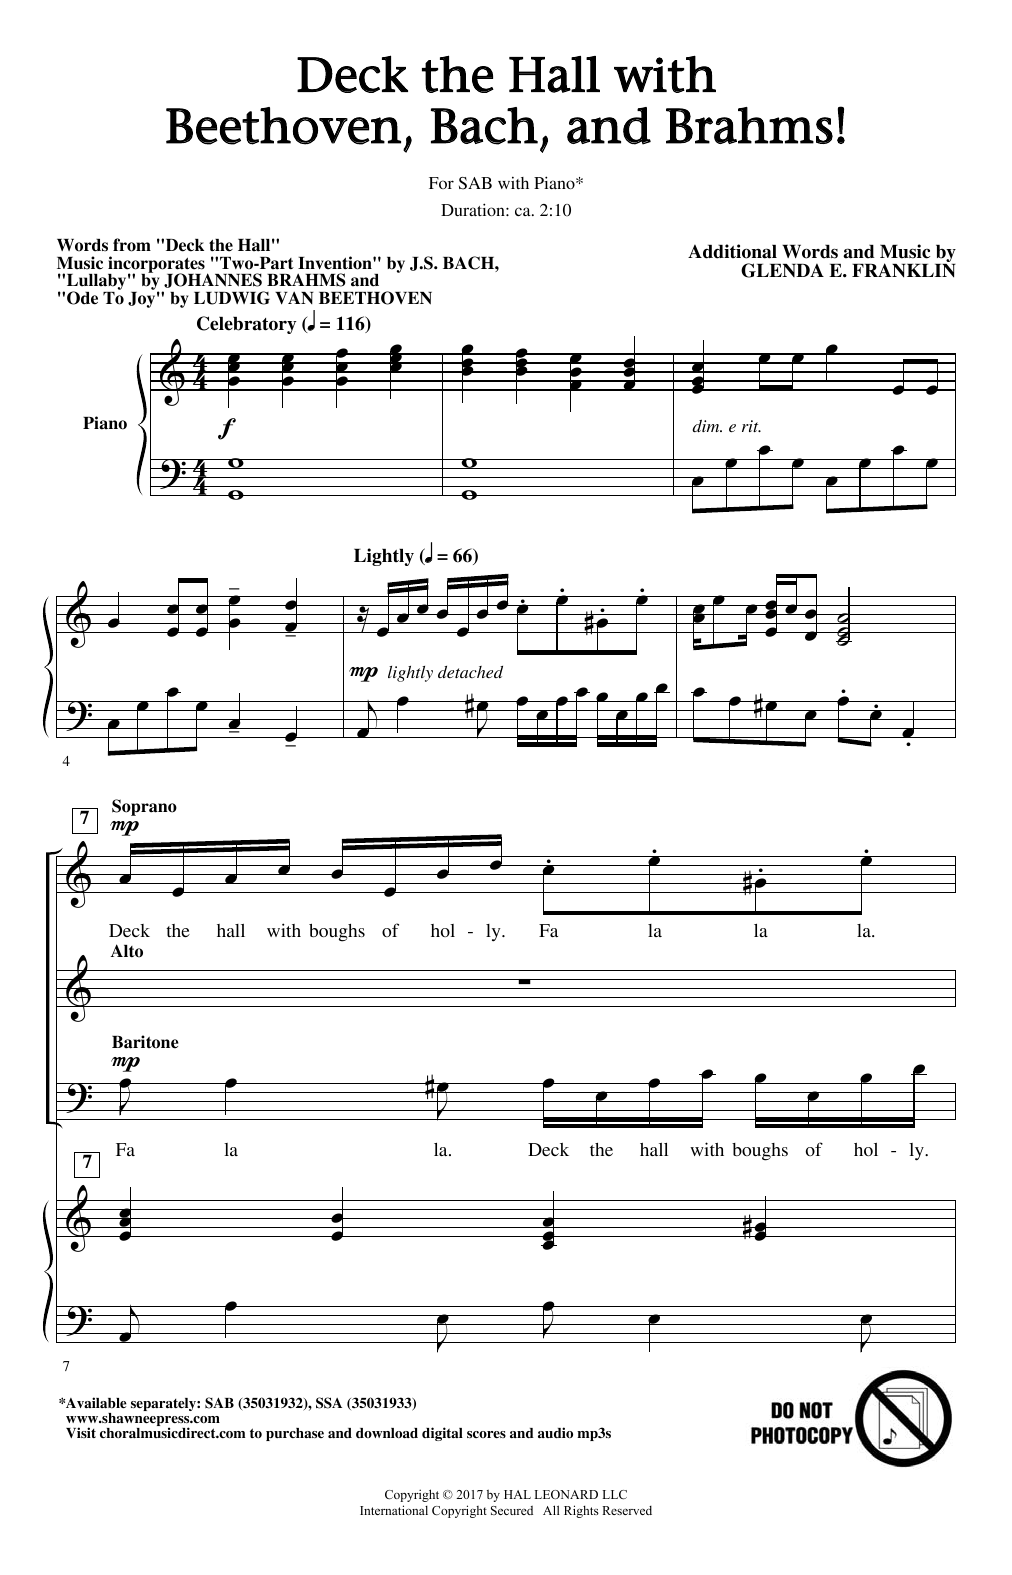 Glenda E. Franklin Deck The Hall With Beethoven, Bach, and Brahms! sheet music notes and chords